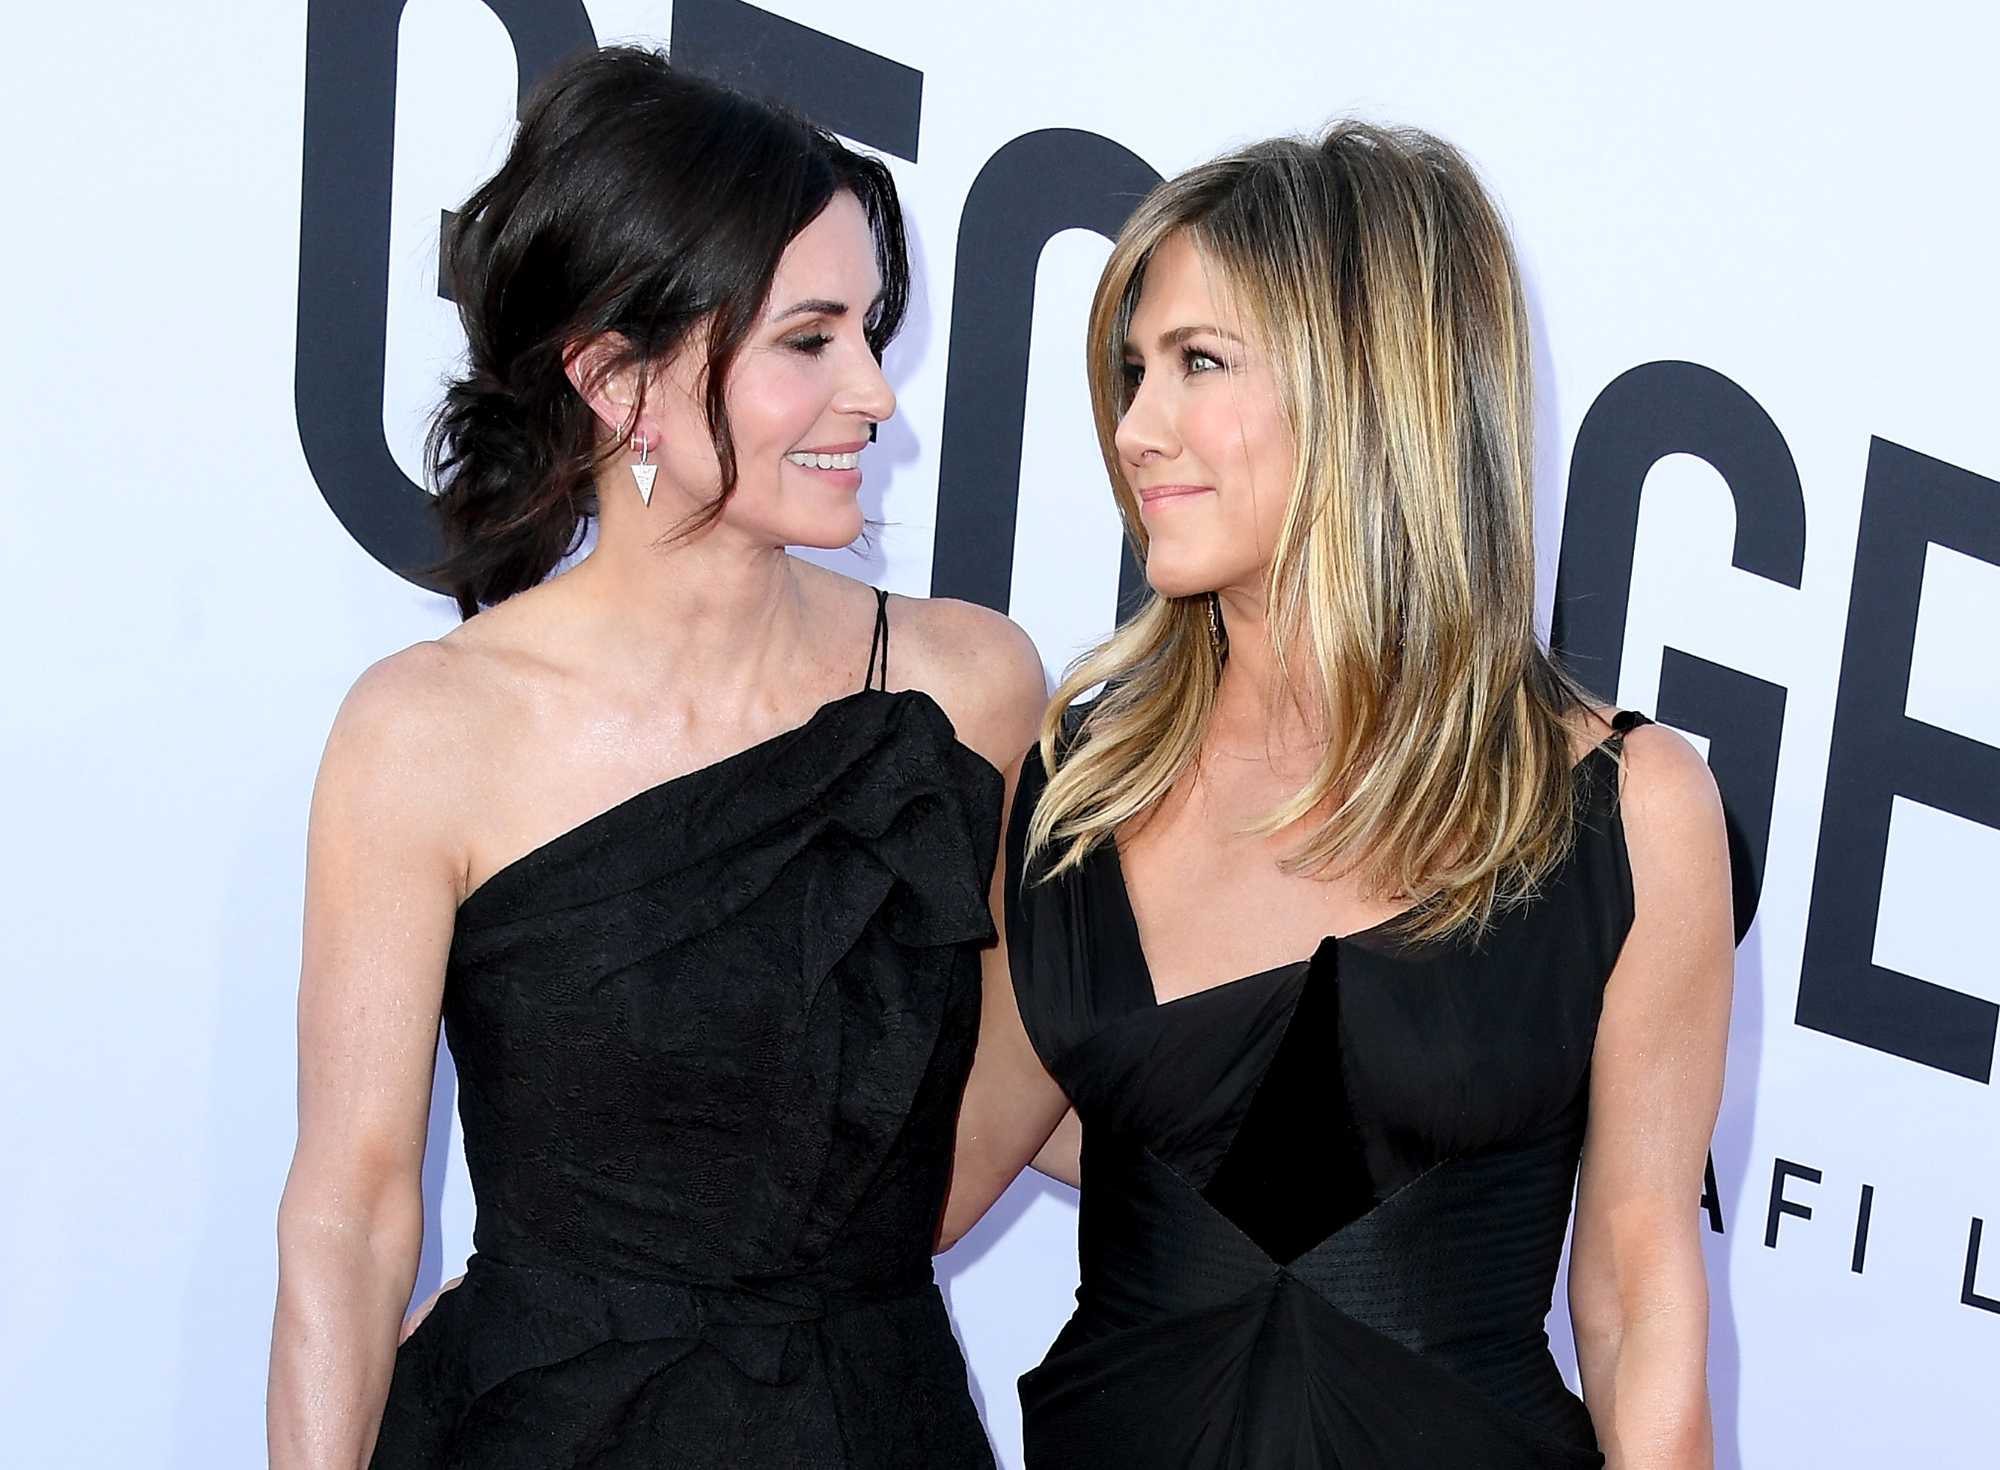 Jennifer Aniston Encouraged Courteney Cox to Post Adorable 'Friends' Apartment Video - Courteney Cox and Jennifer Aniston.